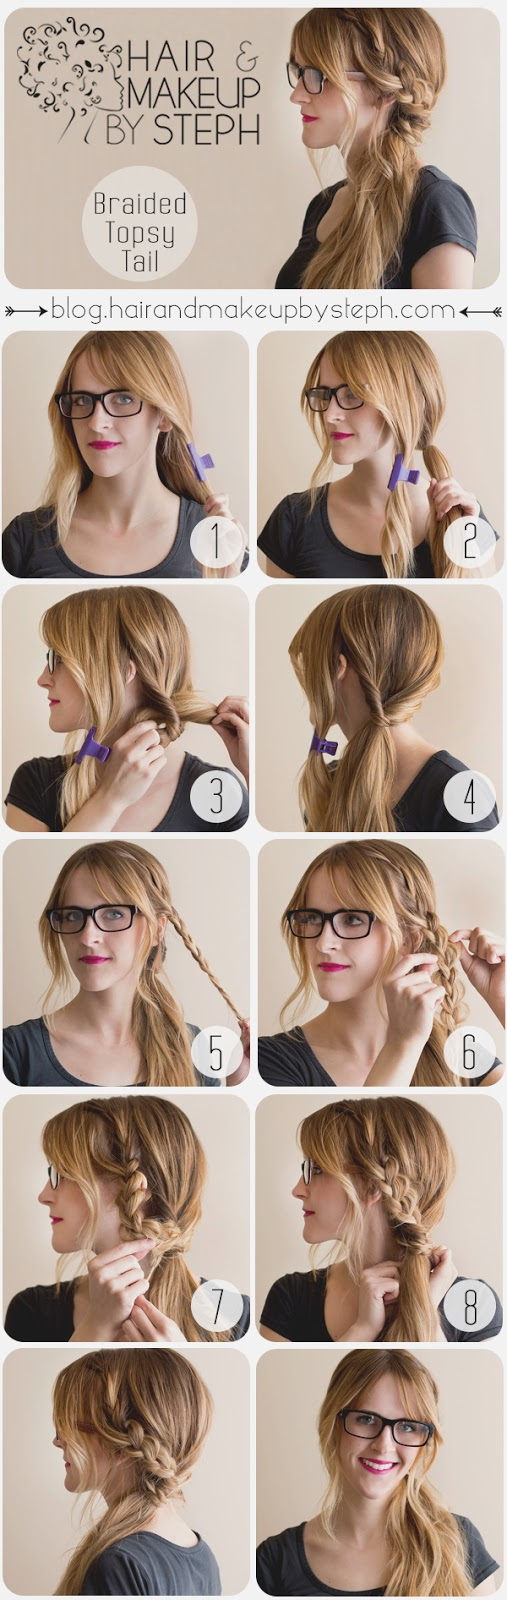 18 easy stepstep tutorials for perfect hairstyles - style motivation